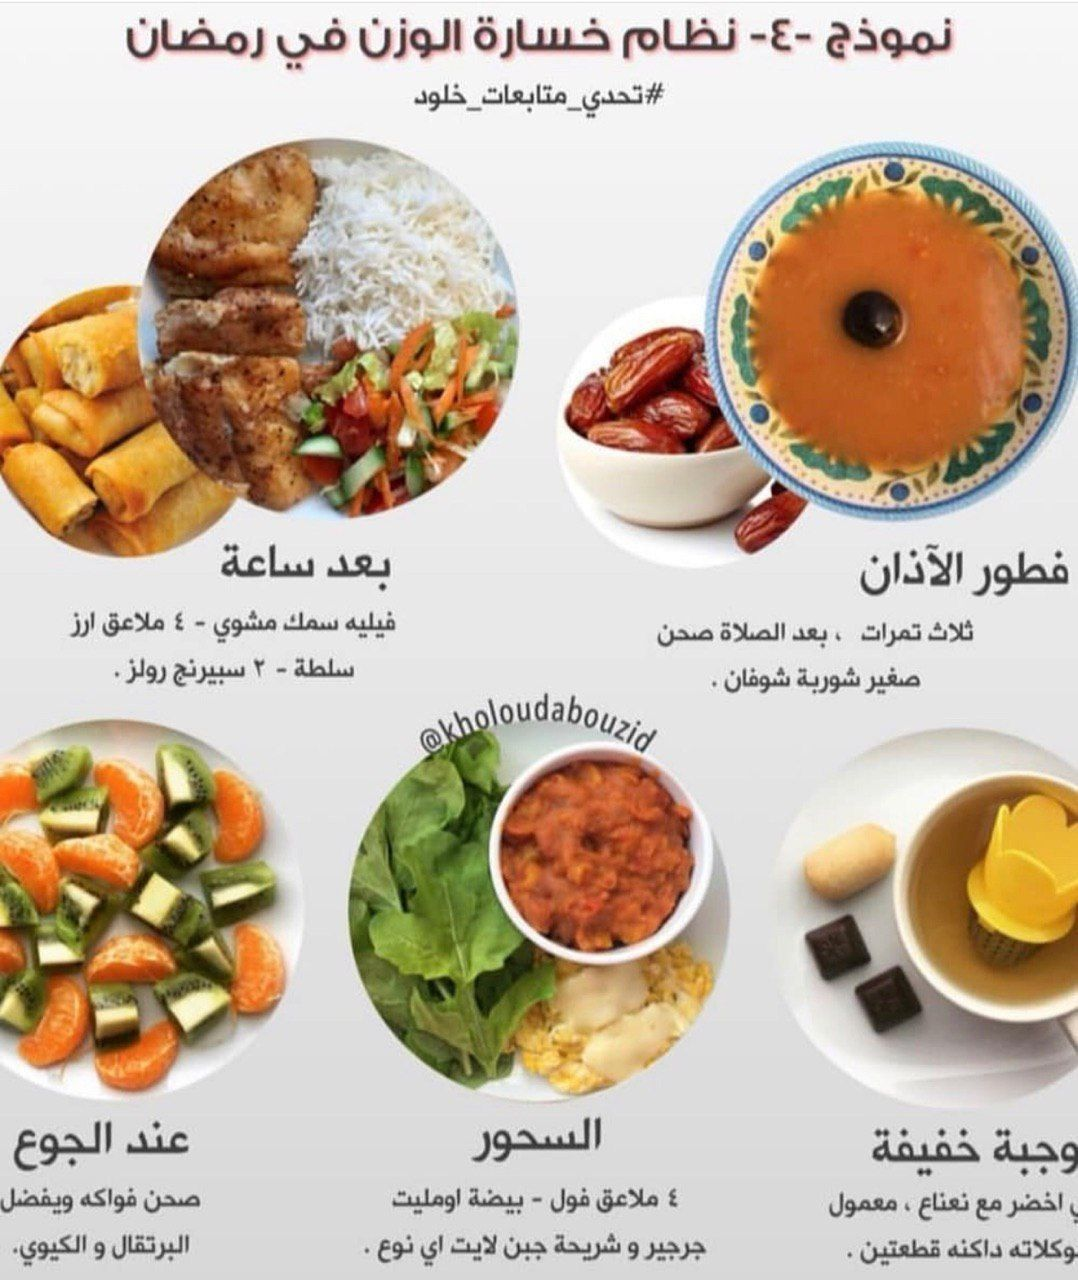 Pin By سيده الذوق On دواء Health Facts Food Health Eating Healthy Cooking